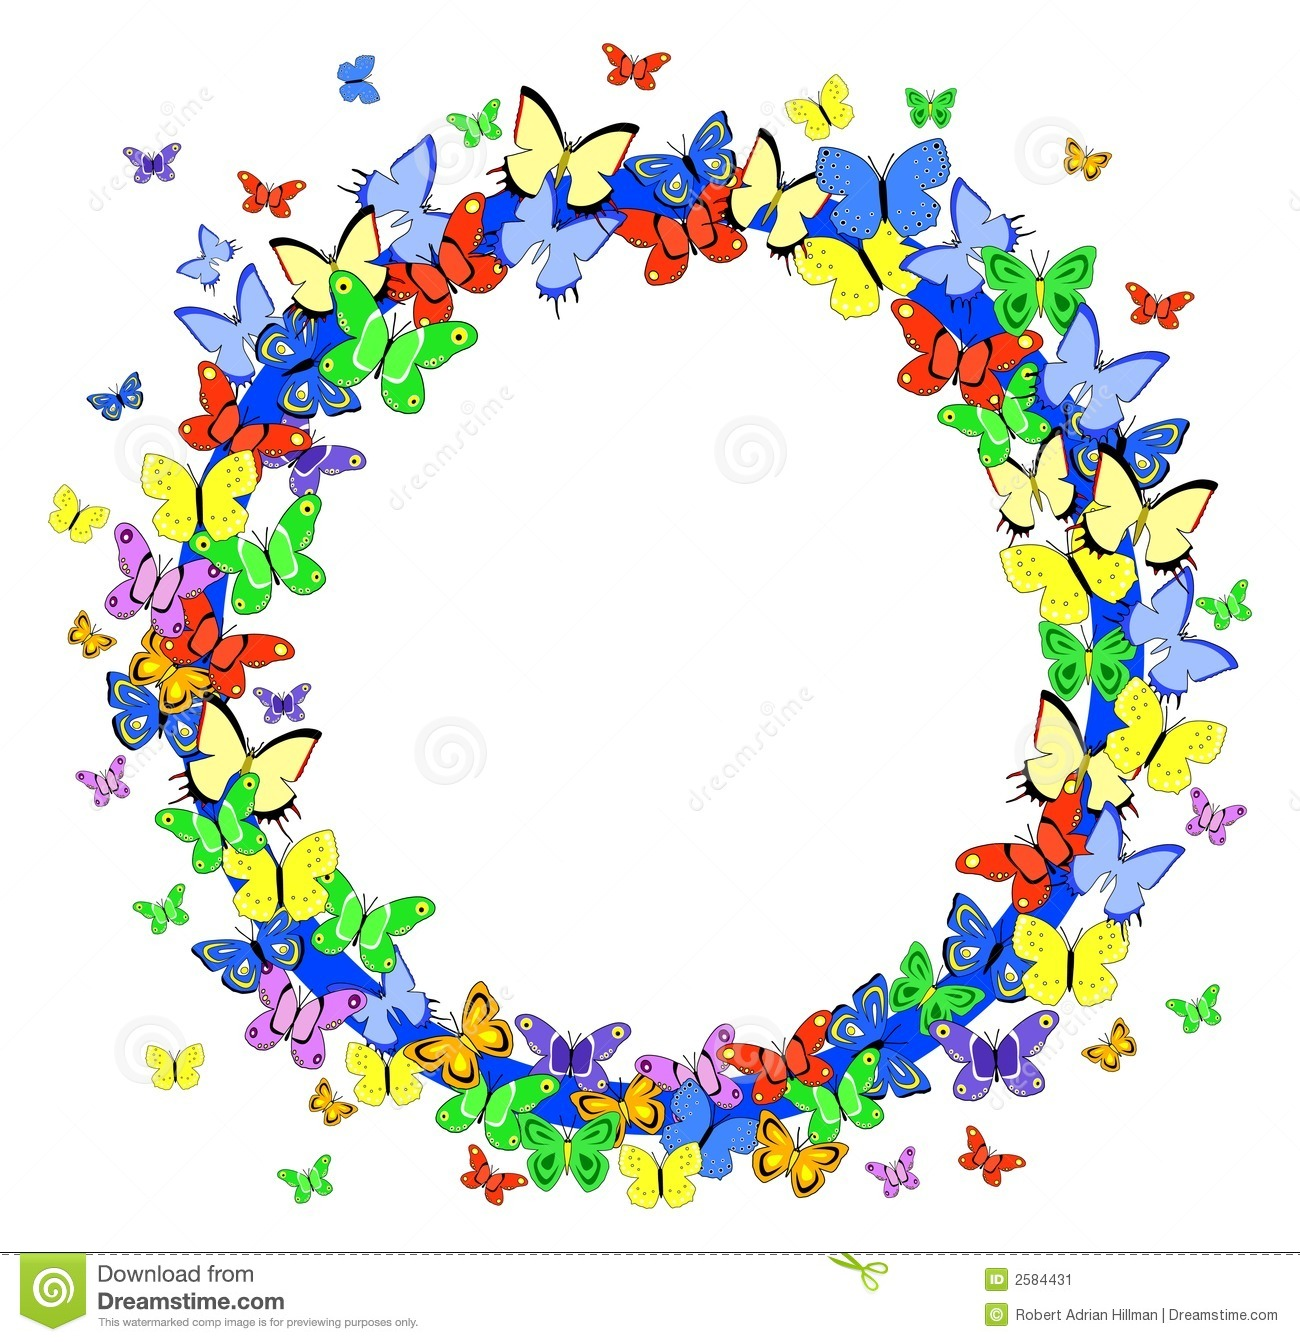 Clipart Flowers AndFlower And Butterfly Border Clip Art